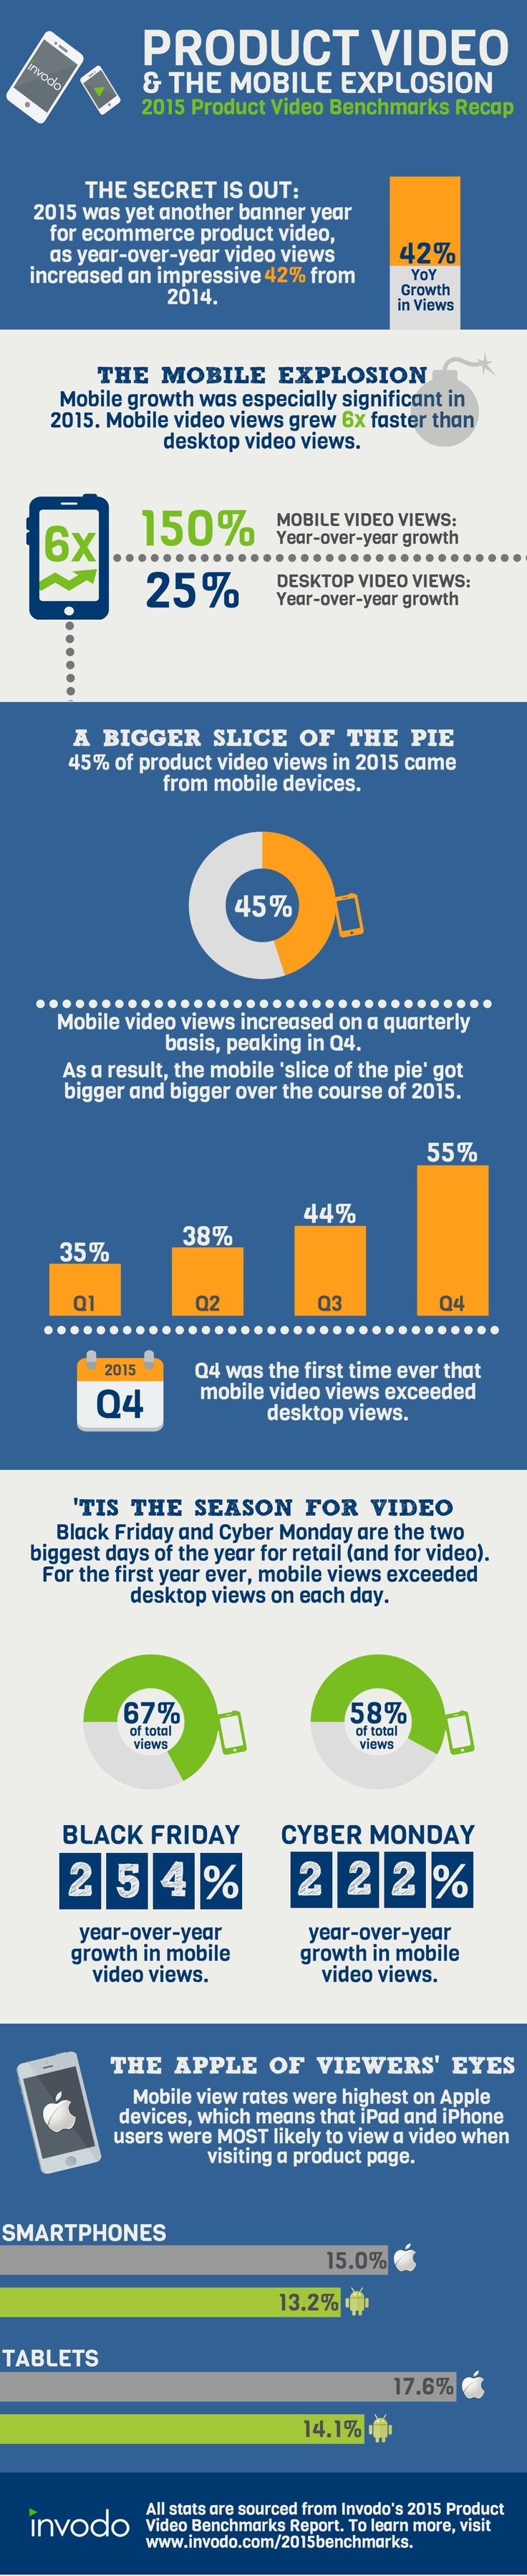 45 best McCrindle Infographics images on Pinterest   Info graphics ...